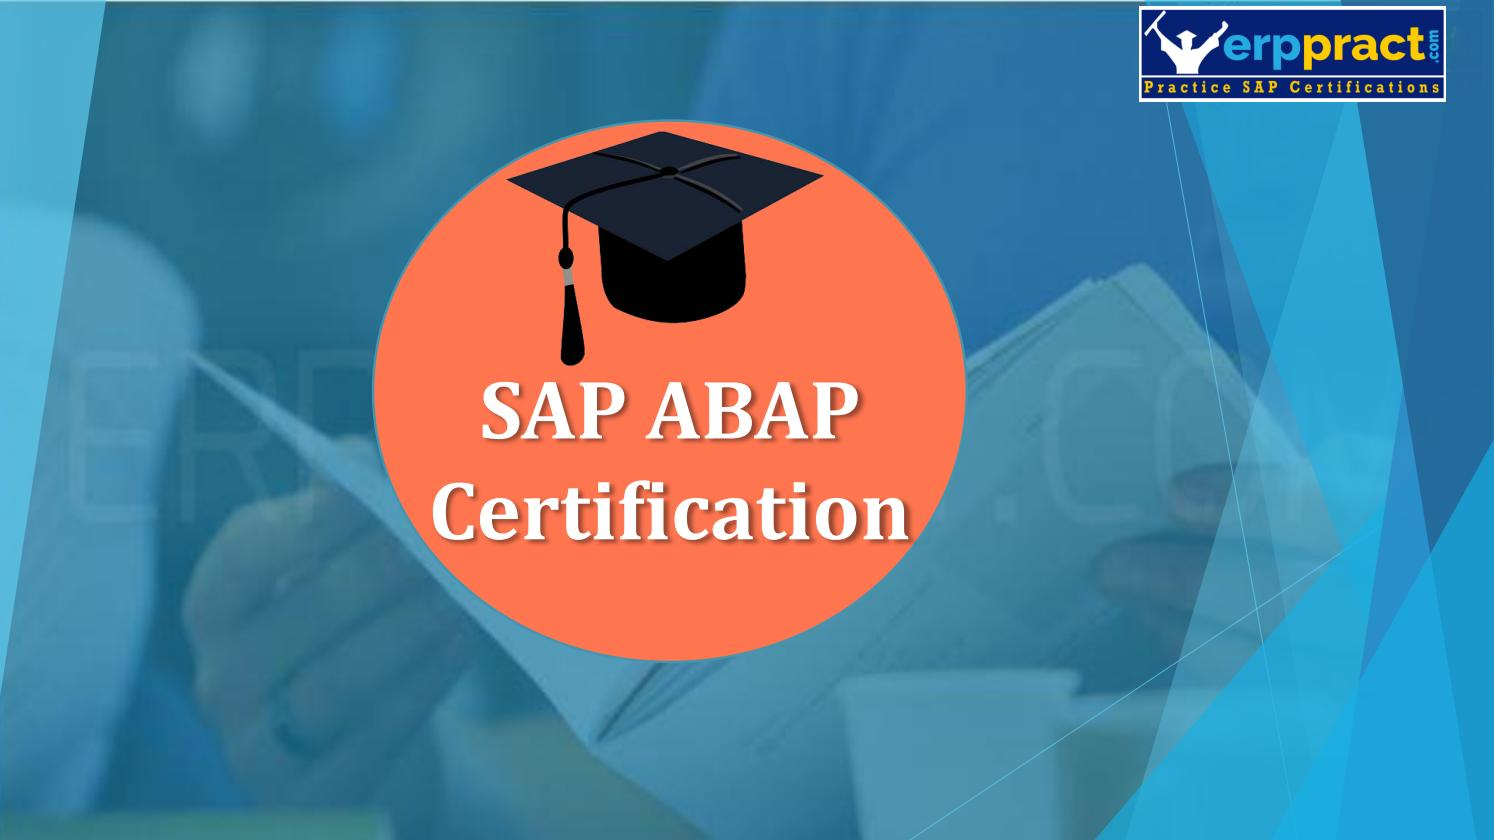 Sap Abap Certification Exam By Erppract Issuu